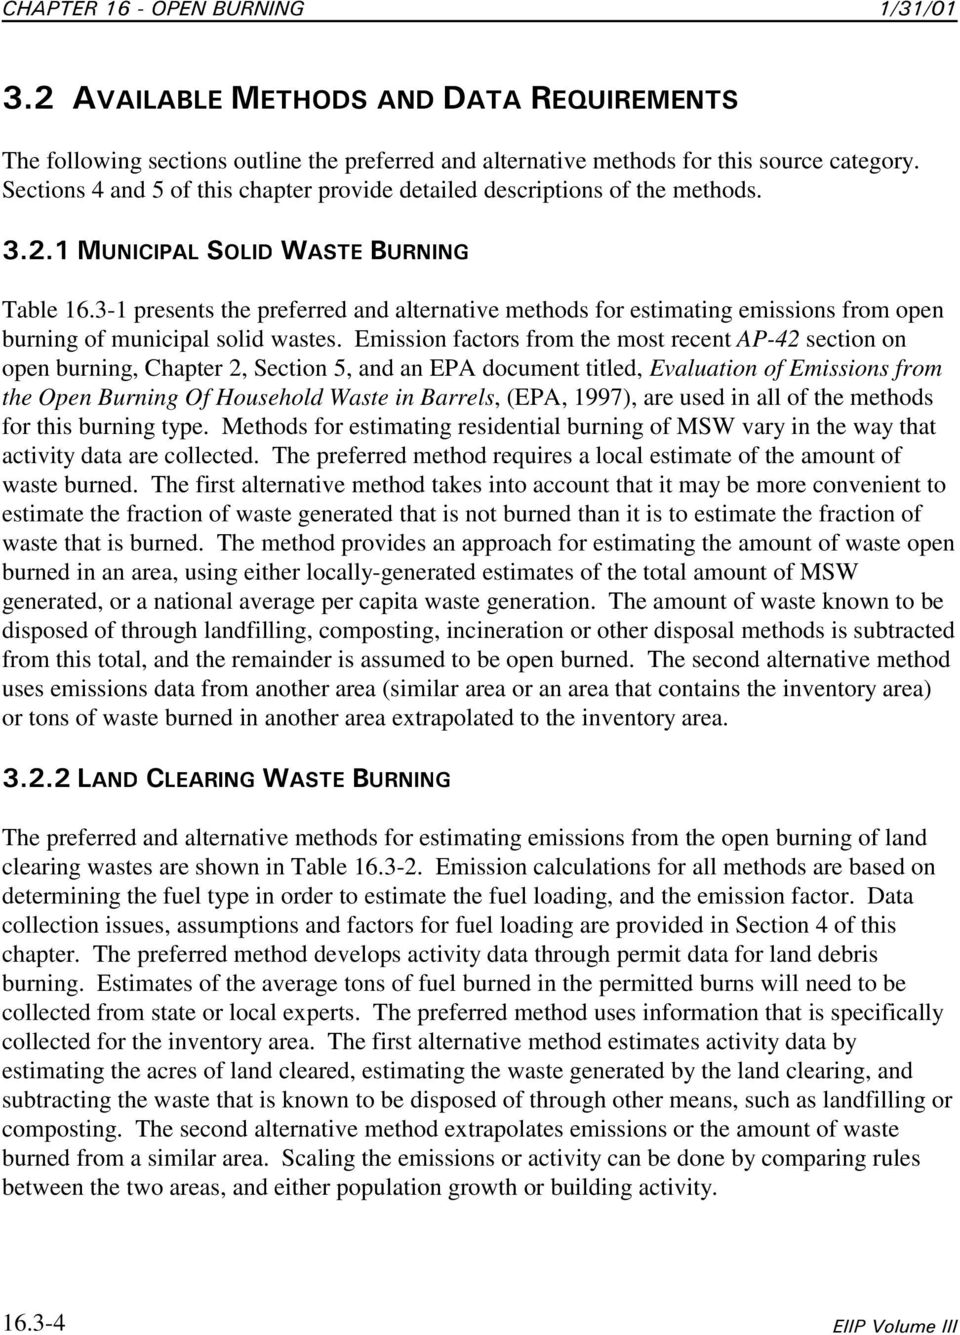 Emission factors from the most recent AP-42 section on open burning, Chapter 2, Section 5, and an EPA document titled, Evaluation of Emissions from the Open Burning Of Household Waste in Barrels,